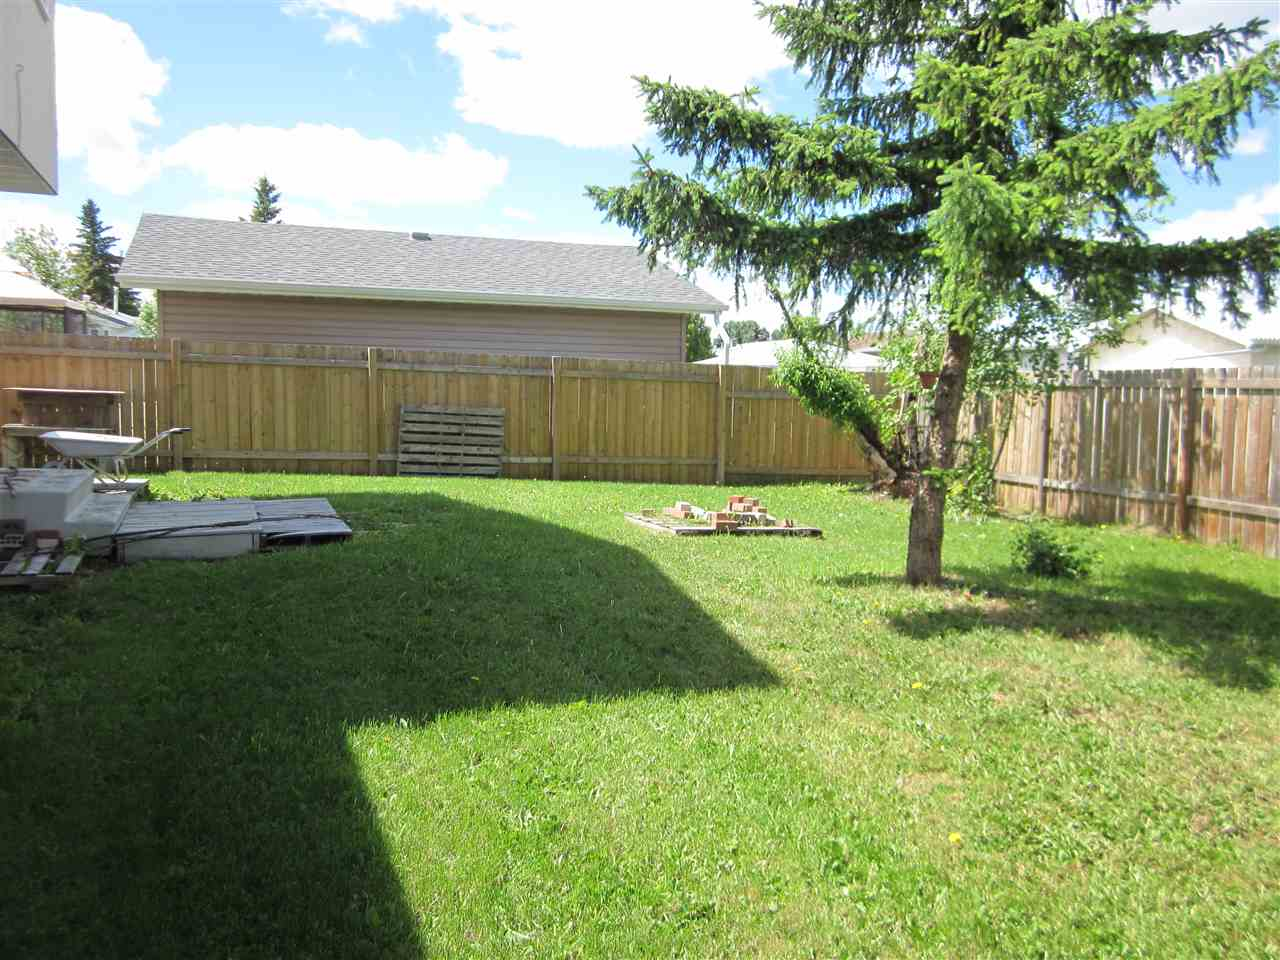 Large fenced and landscaped backyard.